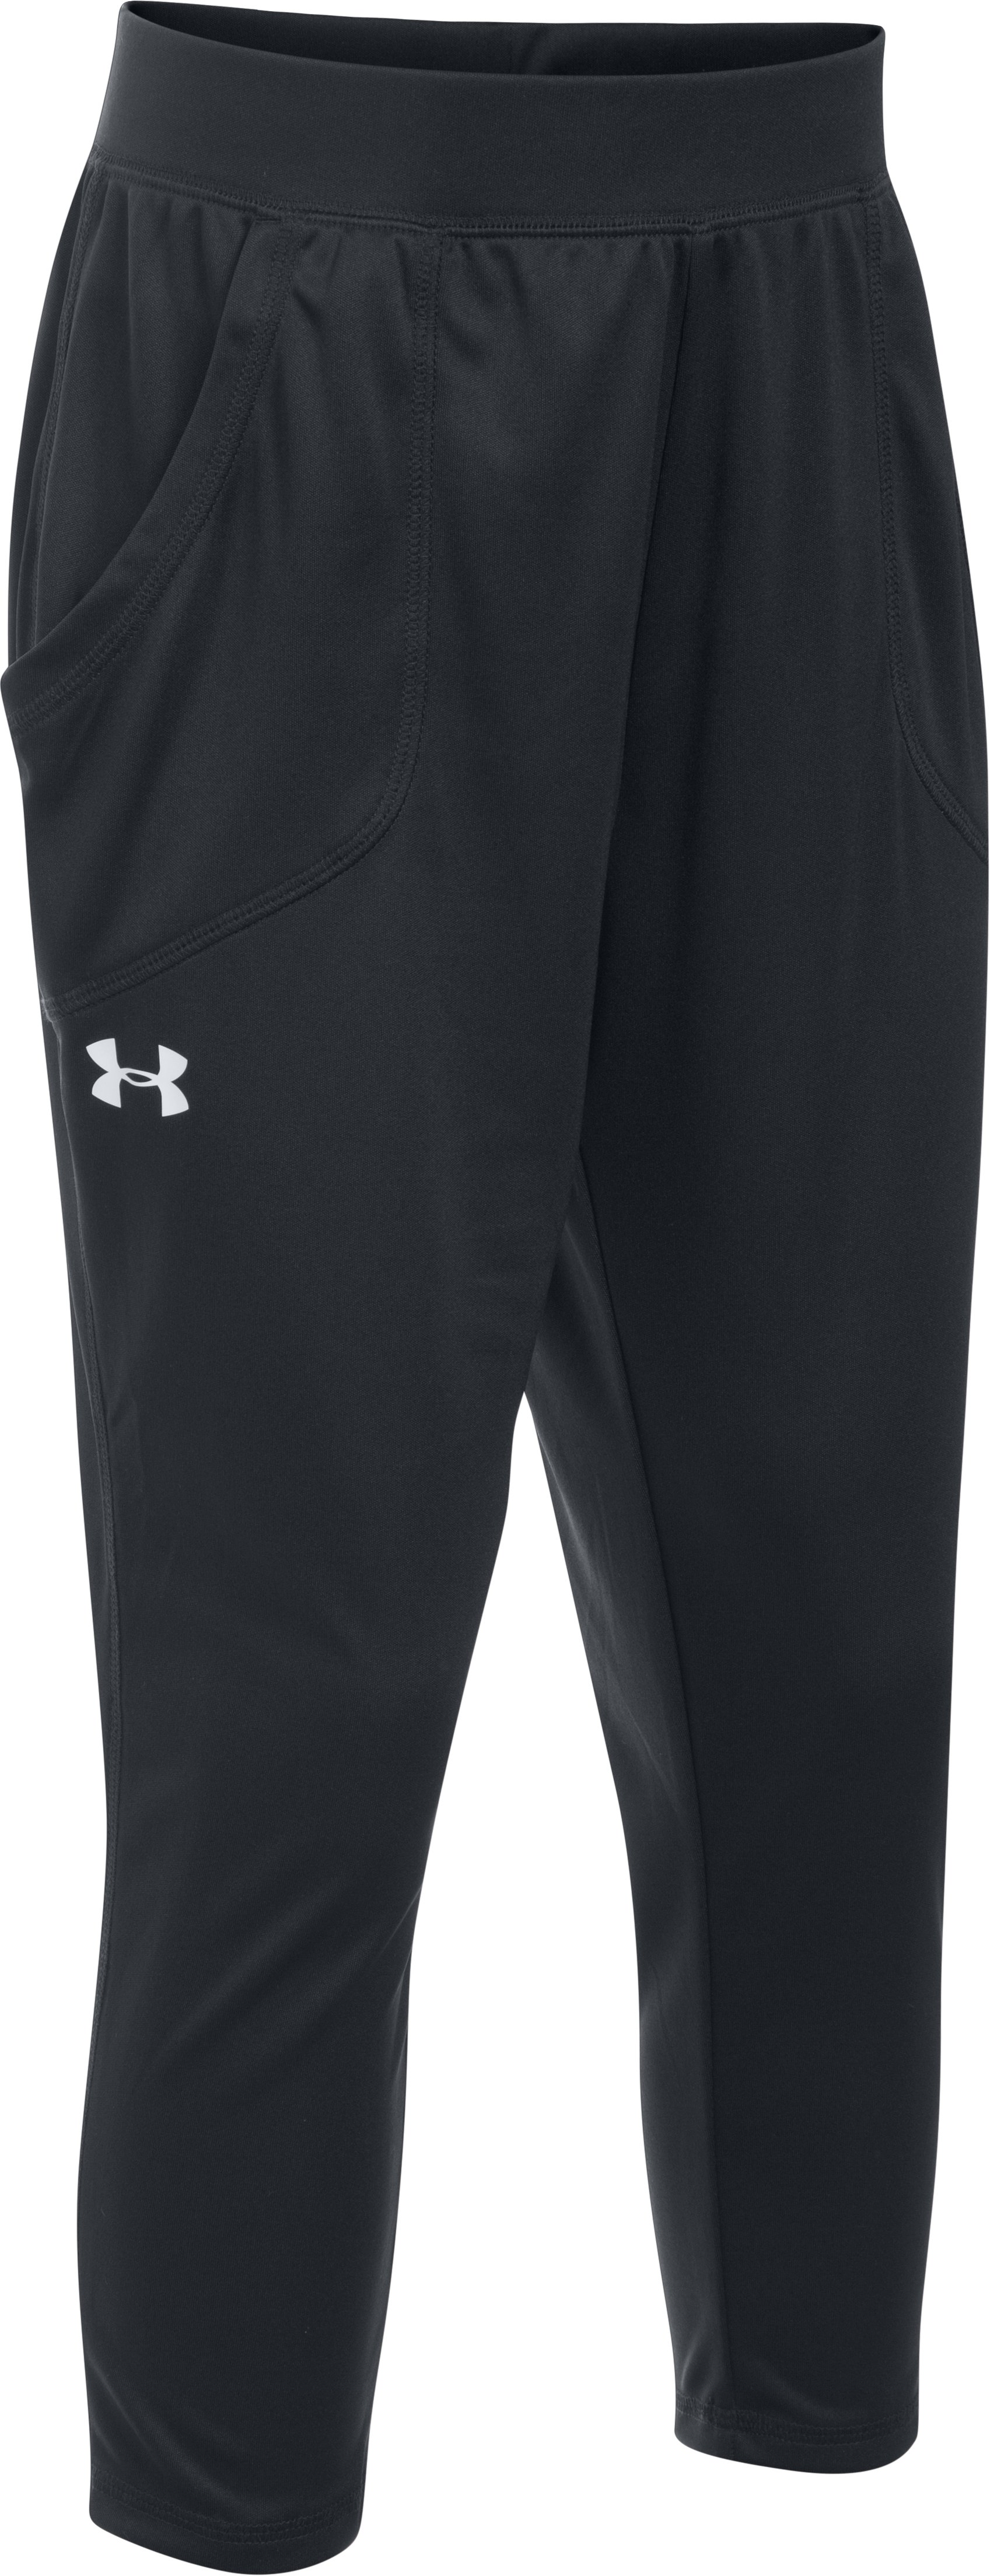 Girls' UA Tech™ Capris, Black